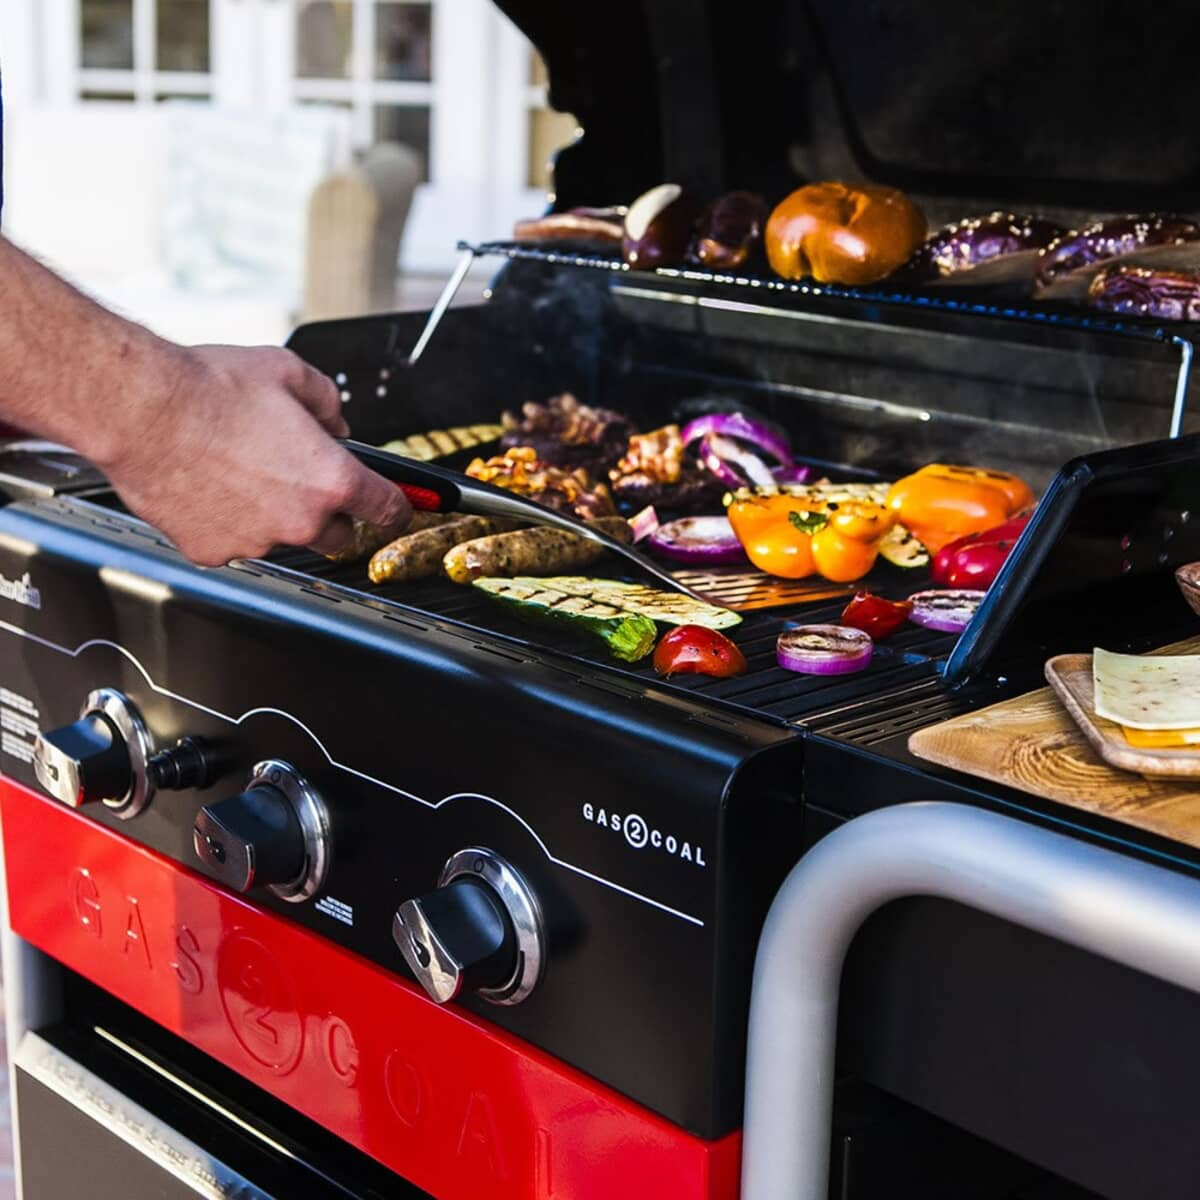 Char Broil Gas2coal 330 Hybrid Grill 6